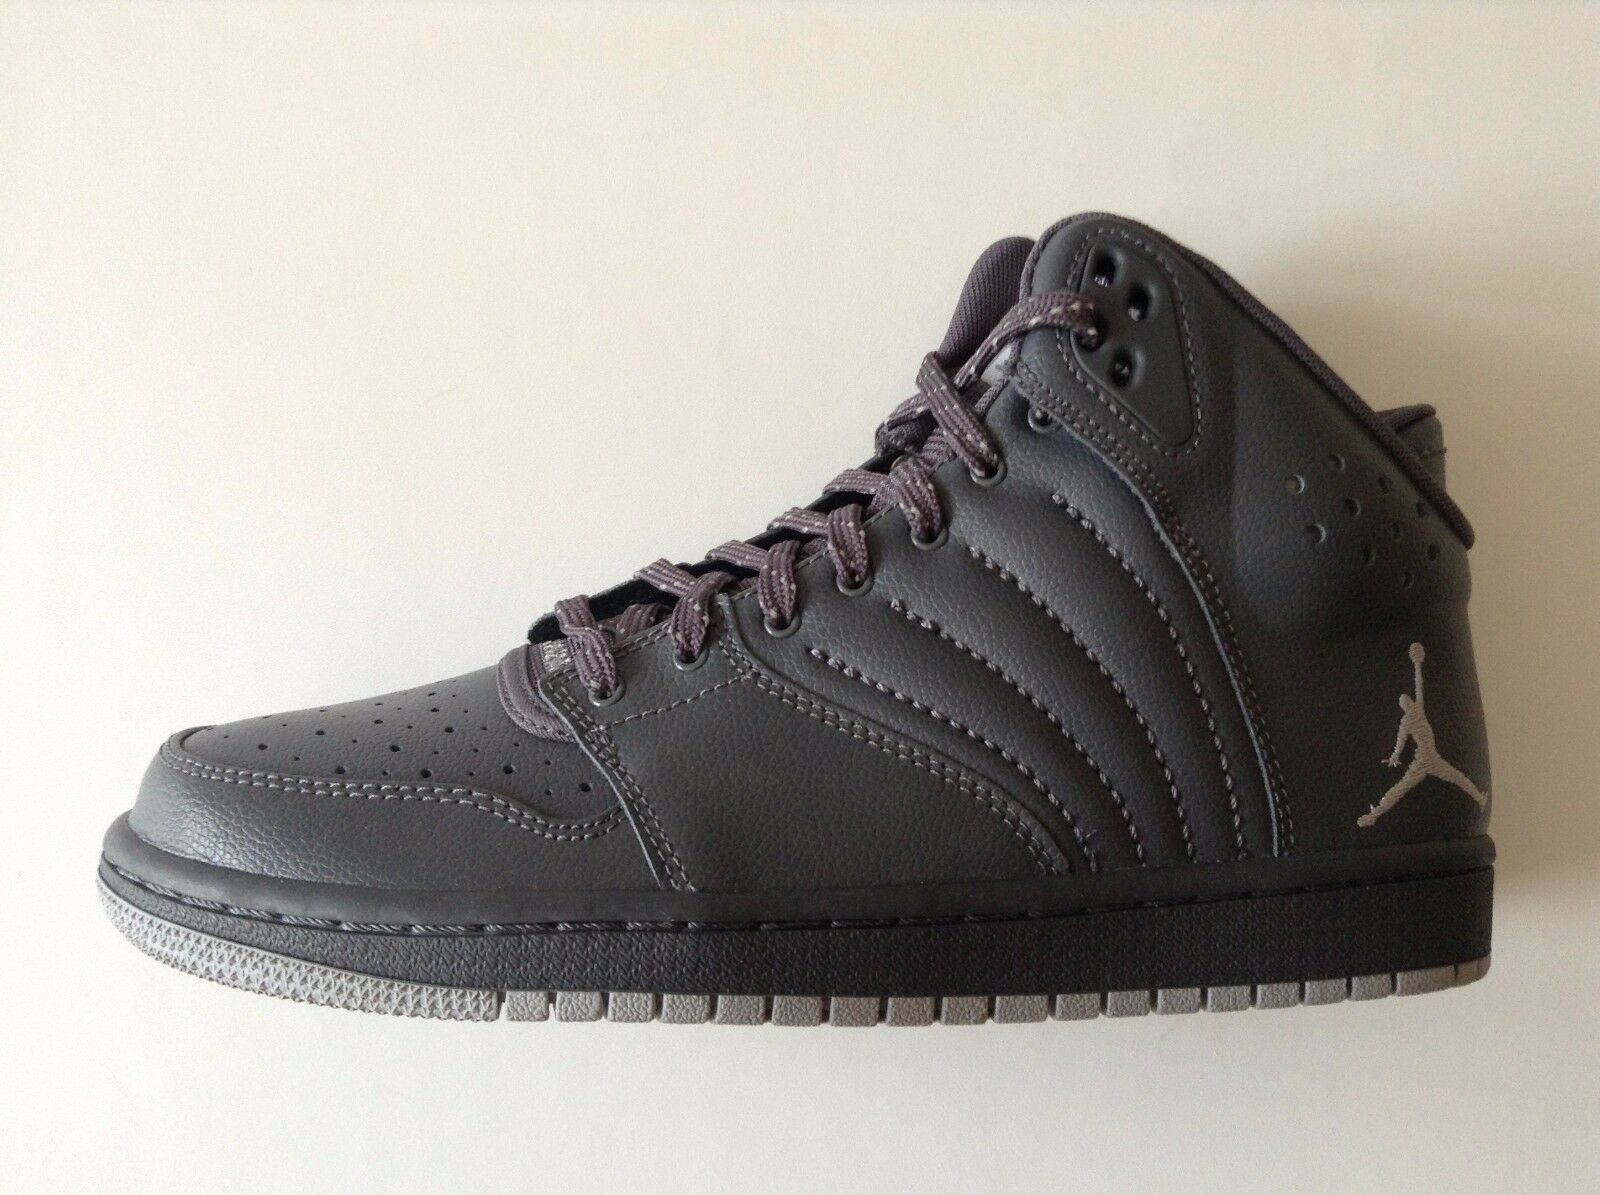 Genuine Nike Jordan 1 Flight 4 Hi Top Basketball Trainers -Grey -UK 7-7.5 - NEW